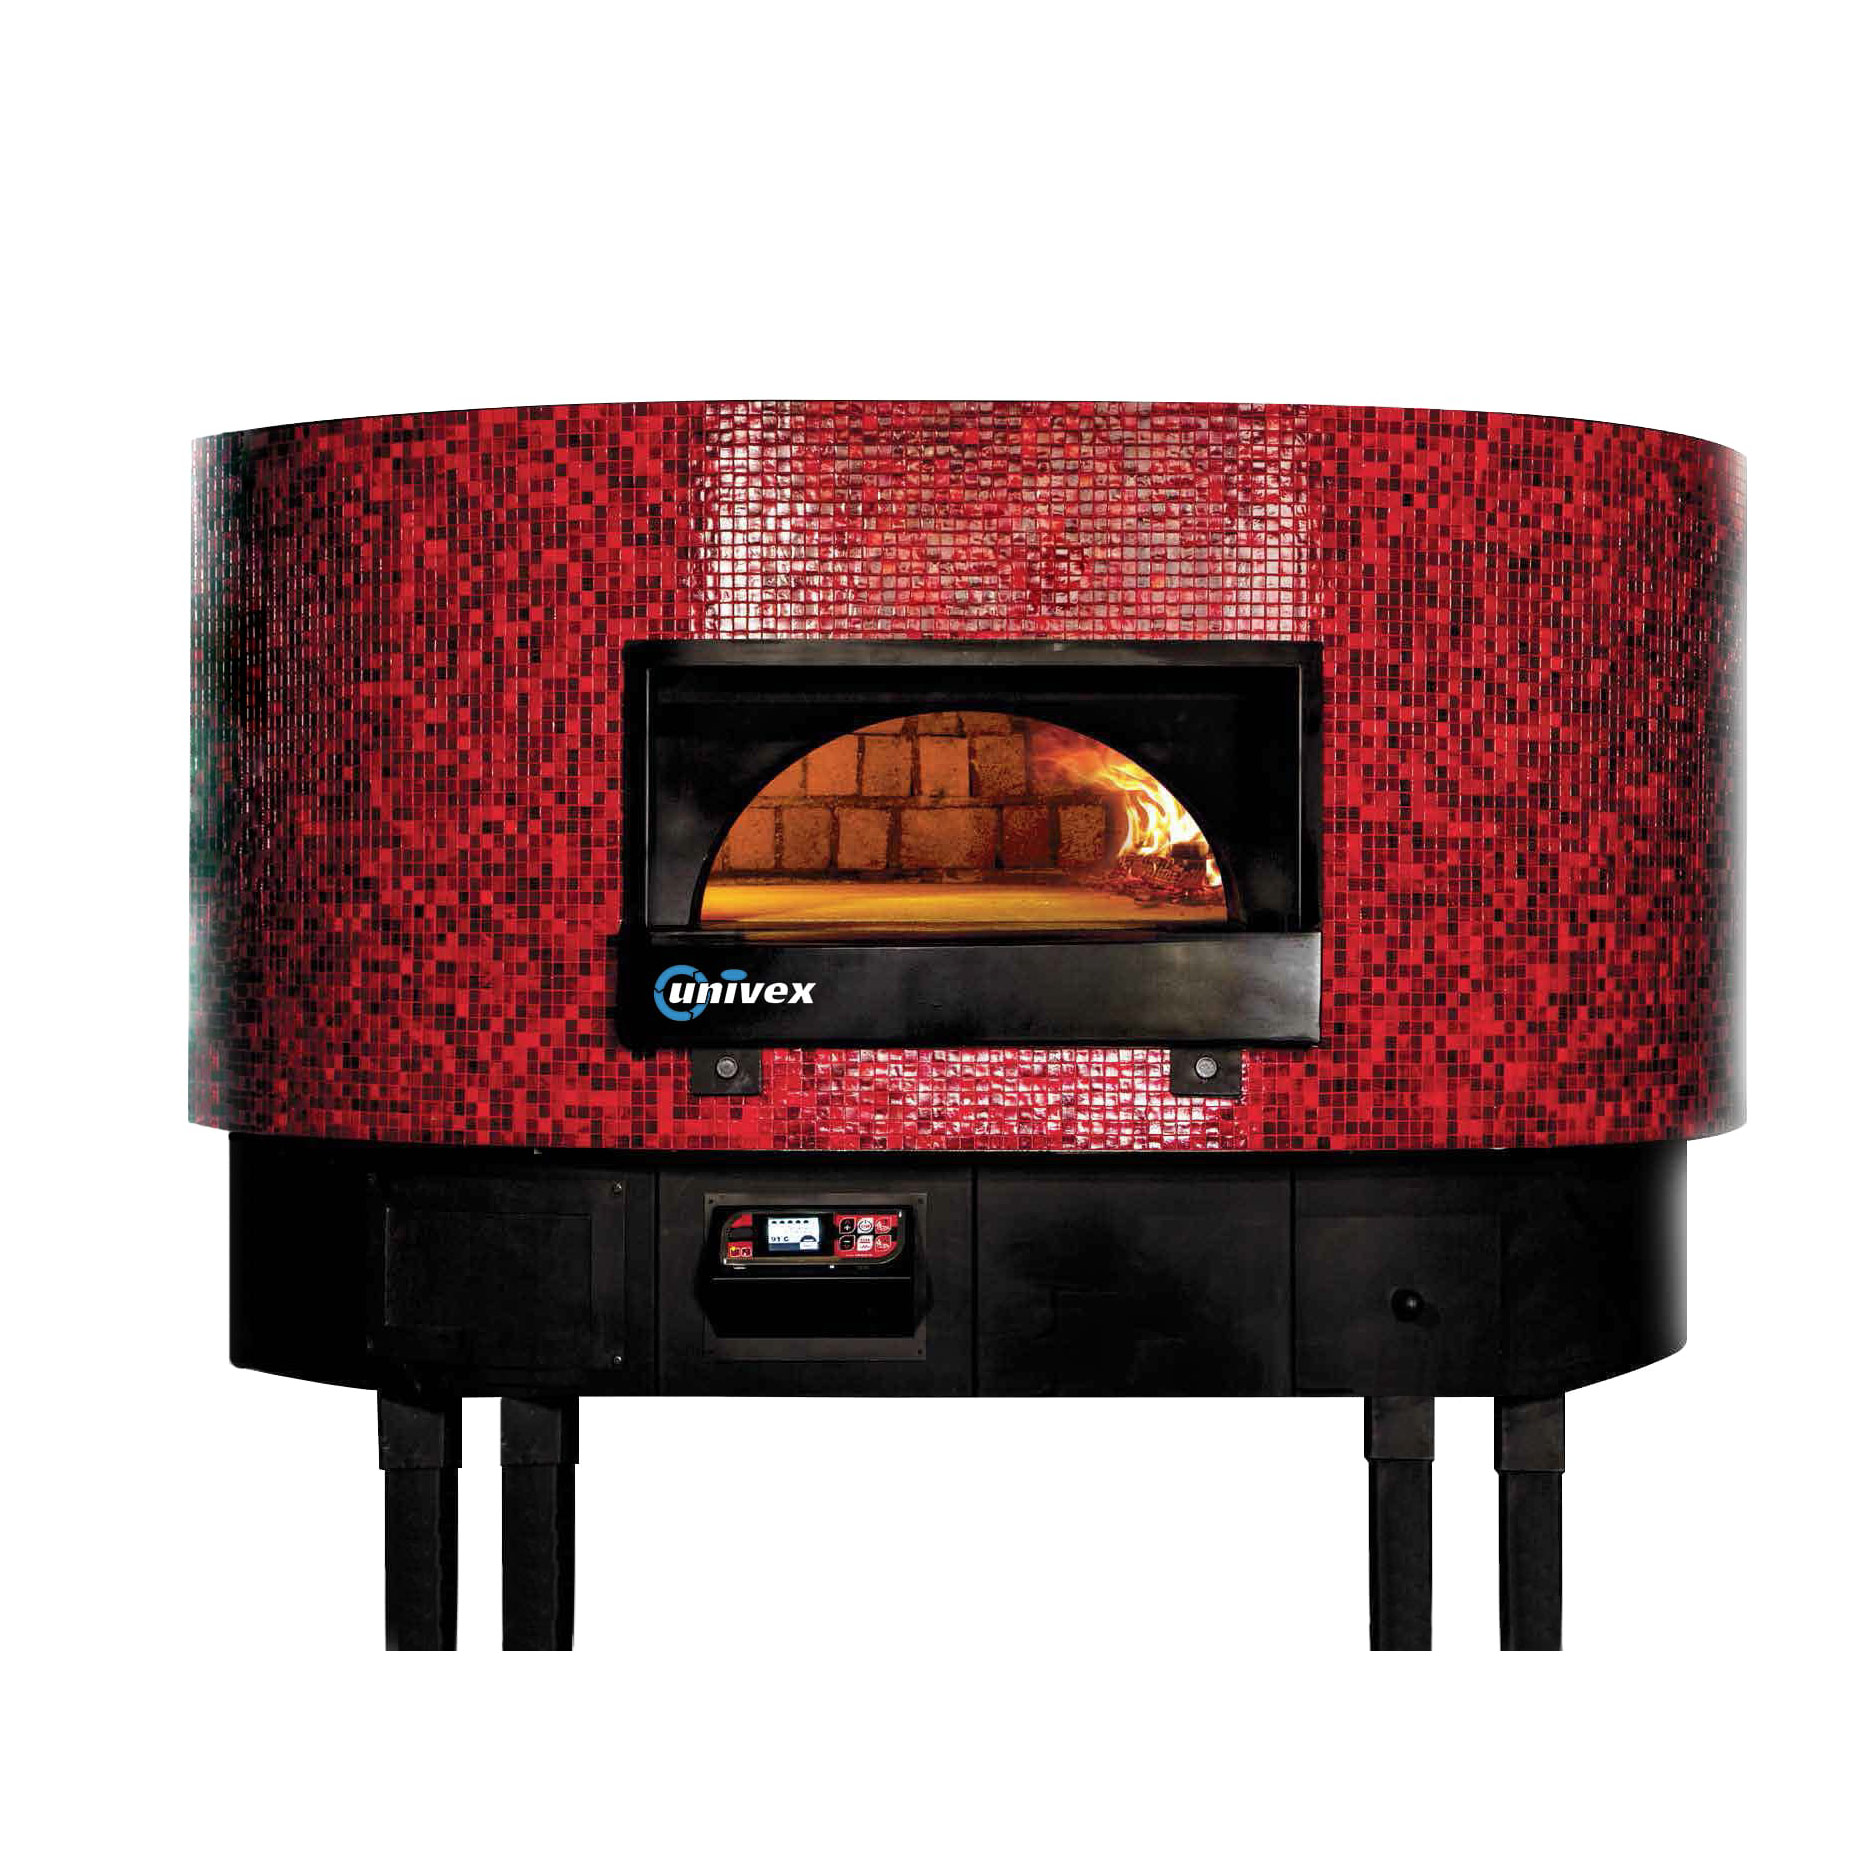 Univex DOME59FT oven, rotary, wood / coal / gas fired